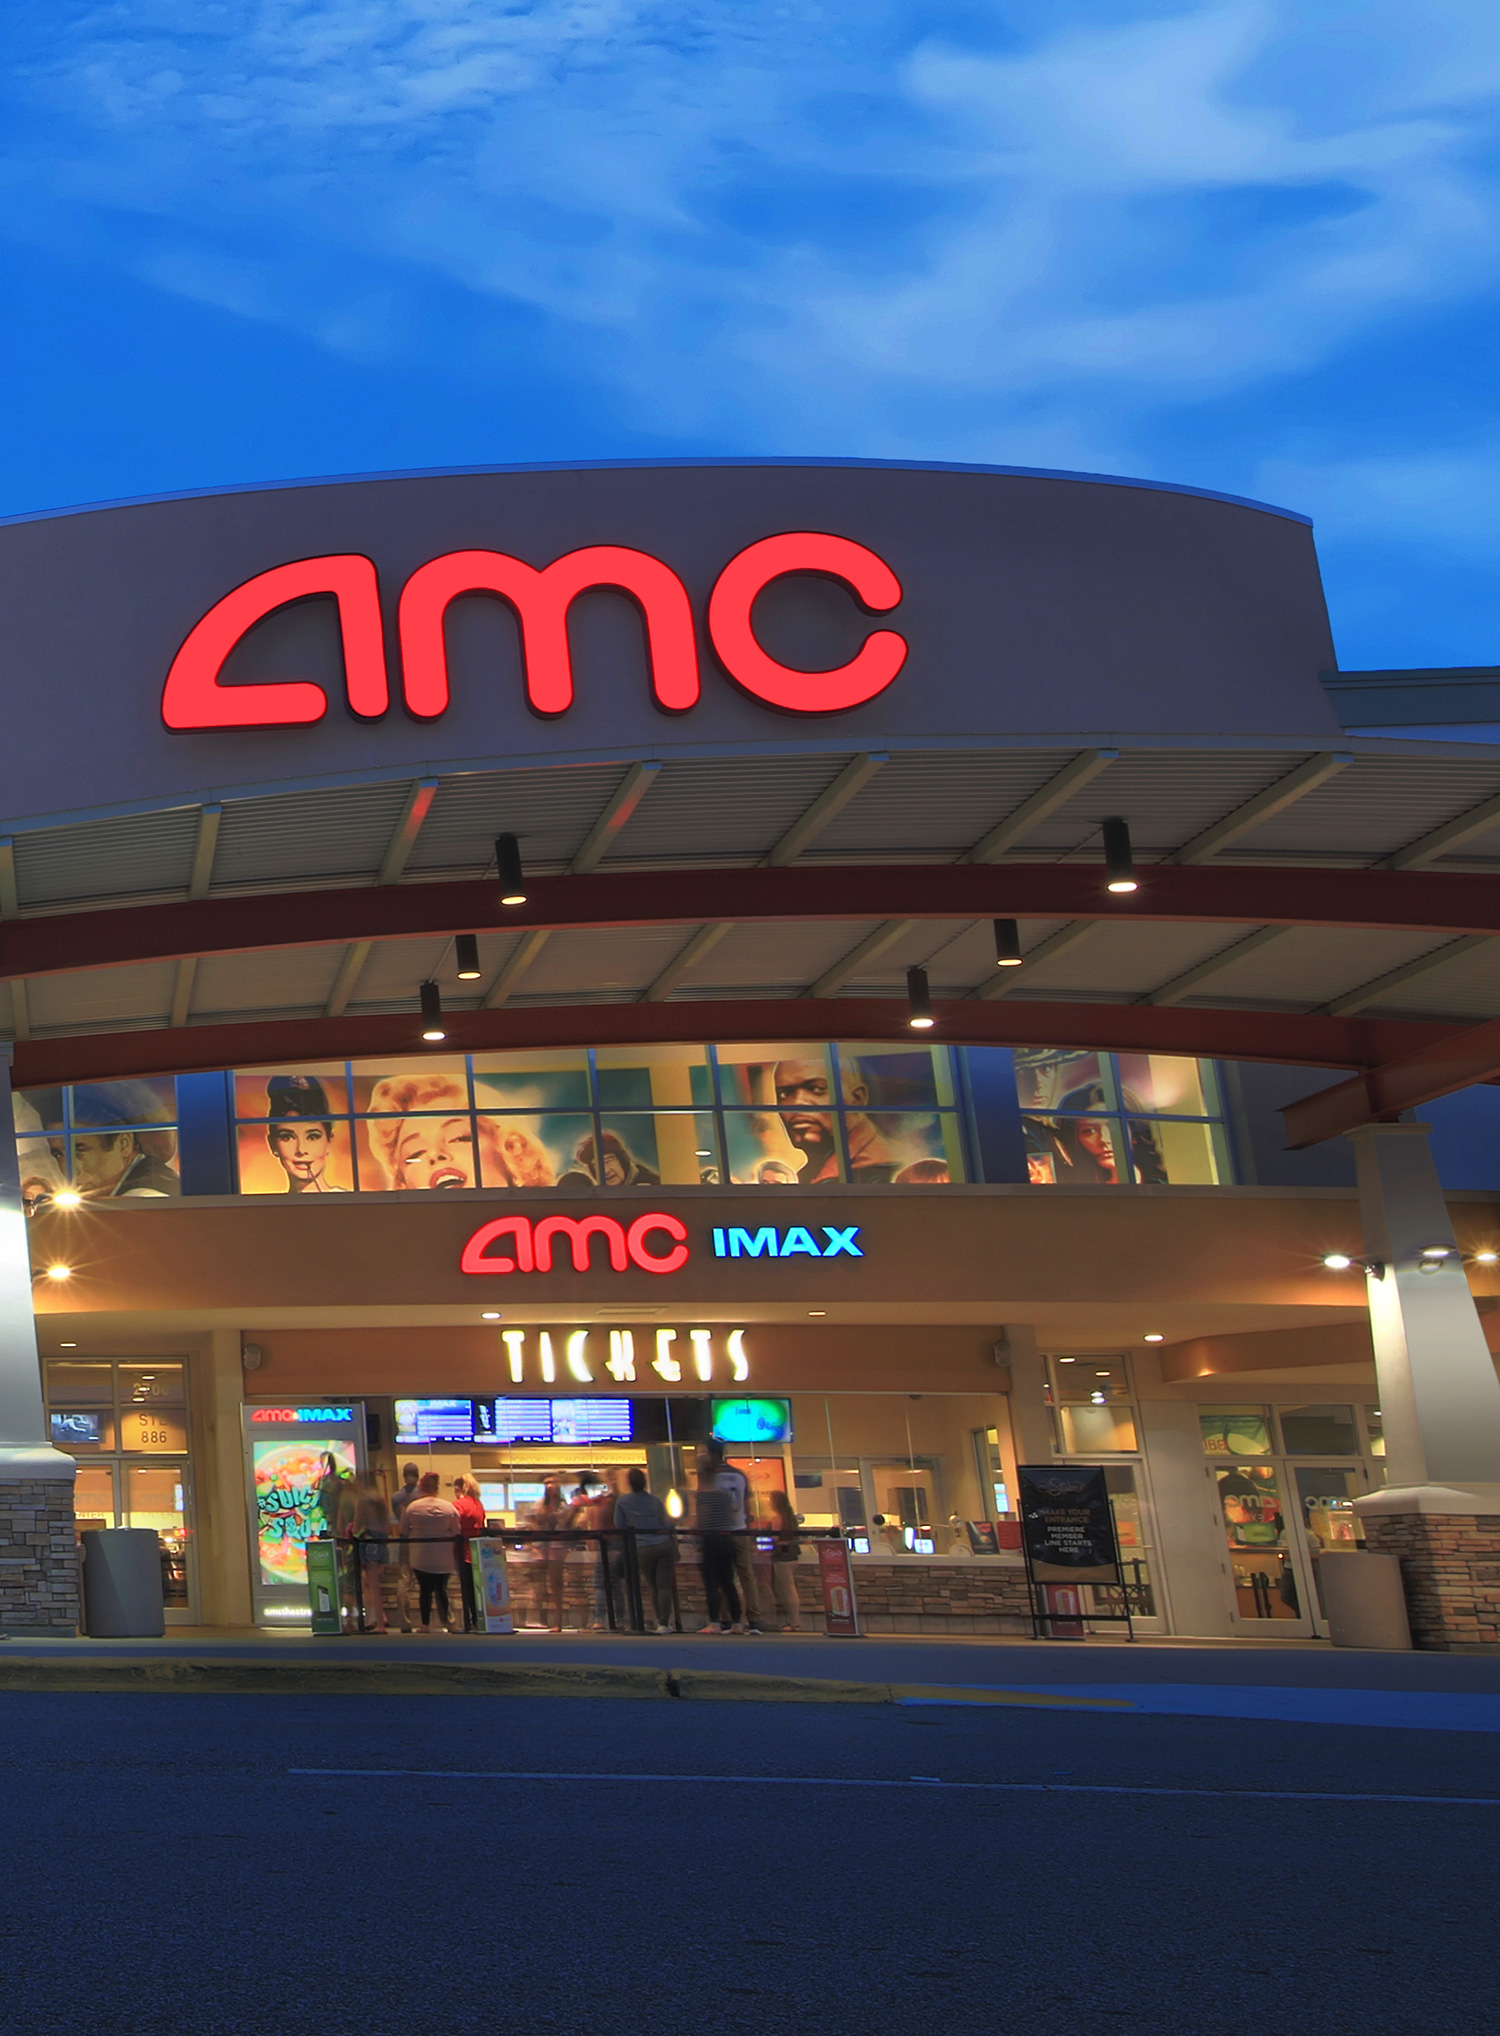 Amc Potomac Mills 18 Woodbridge Virginia 22192 Amc Theatres